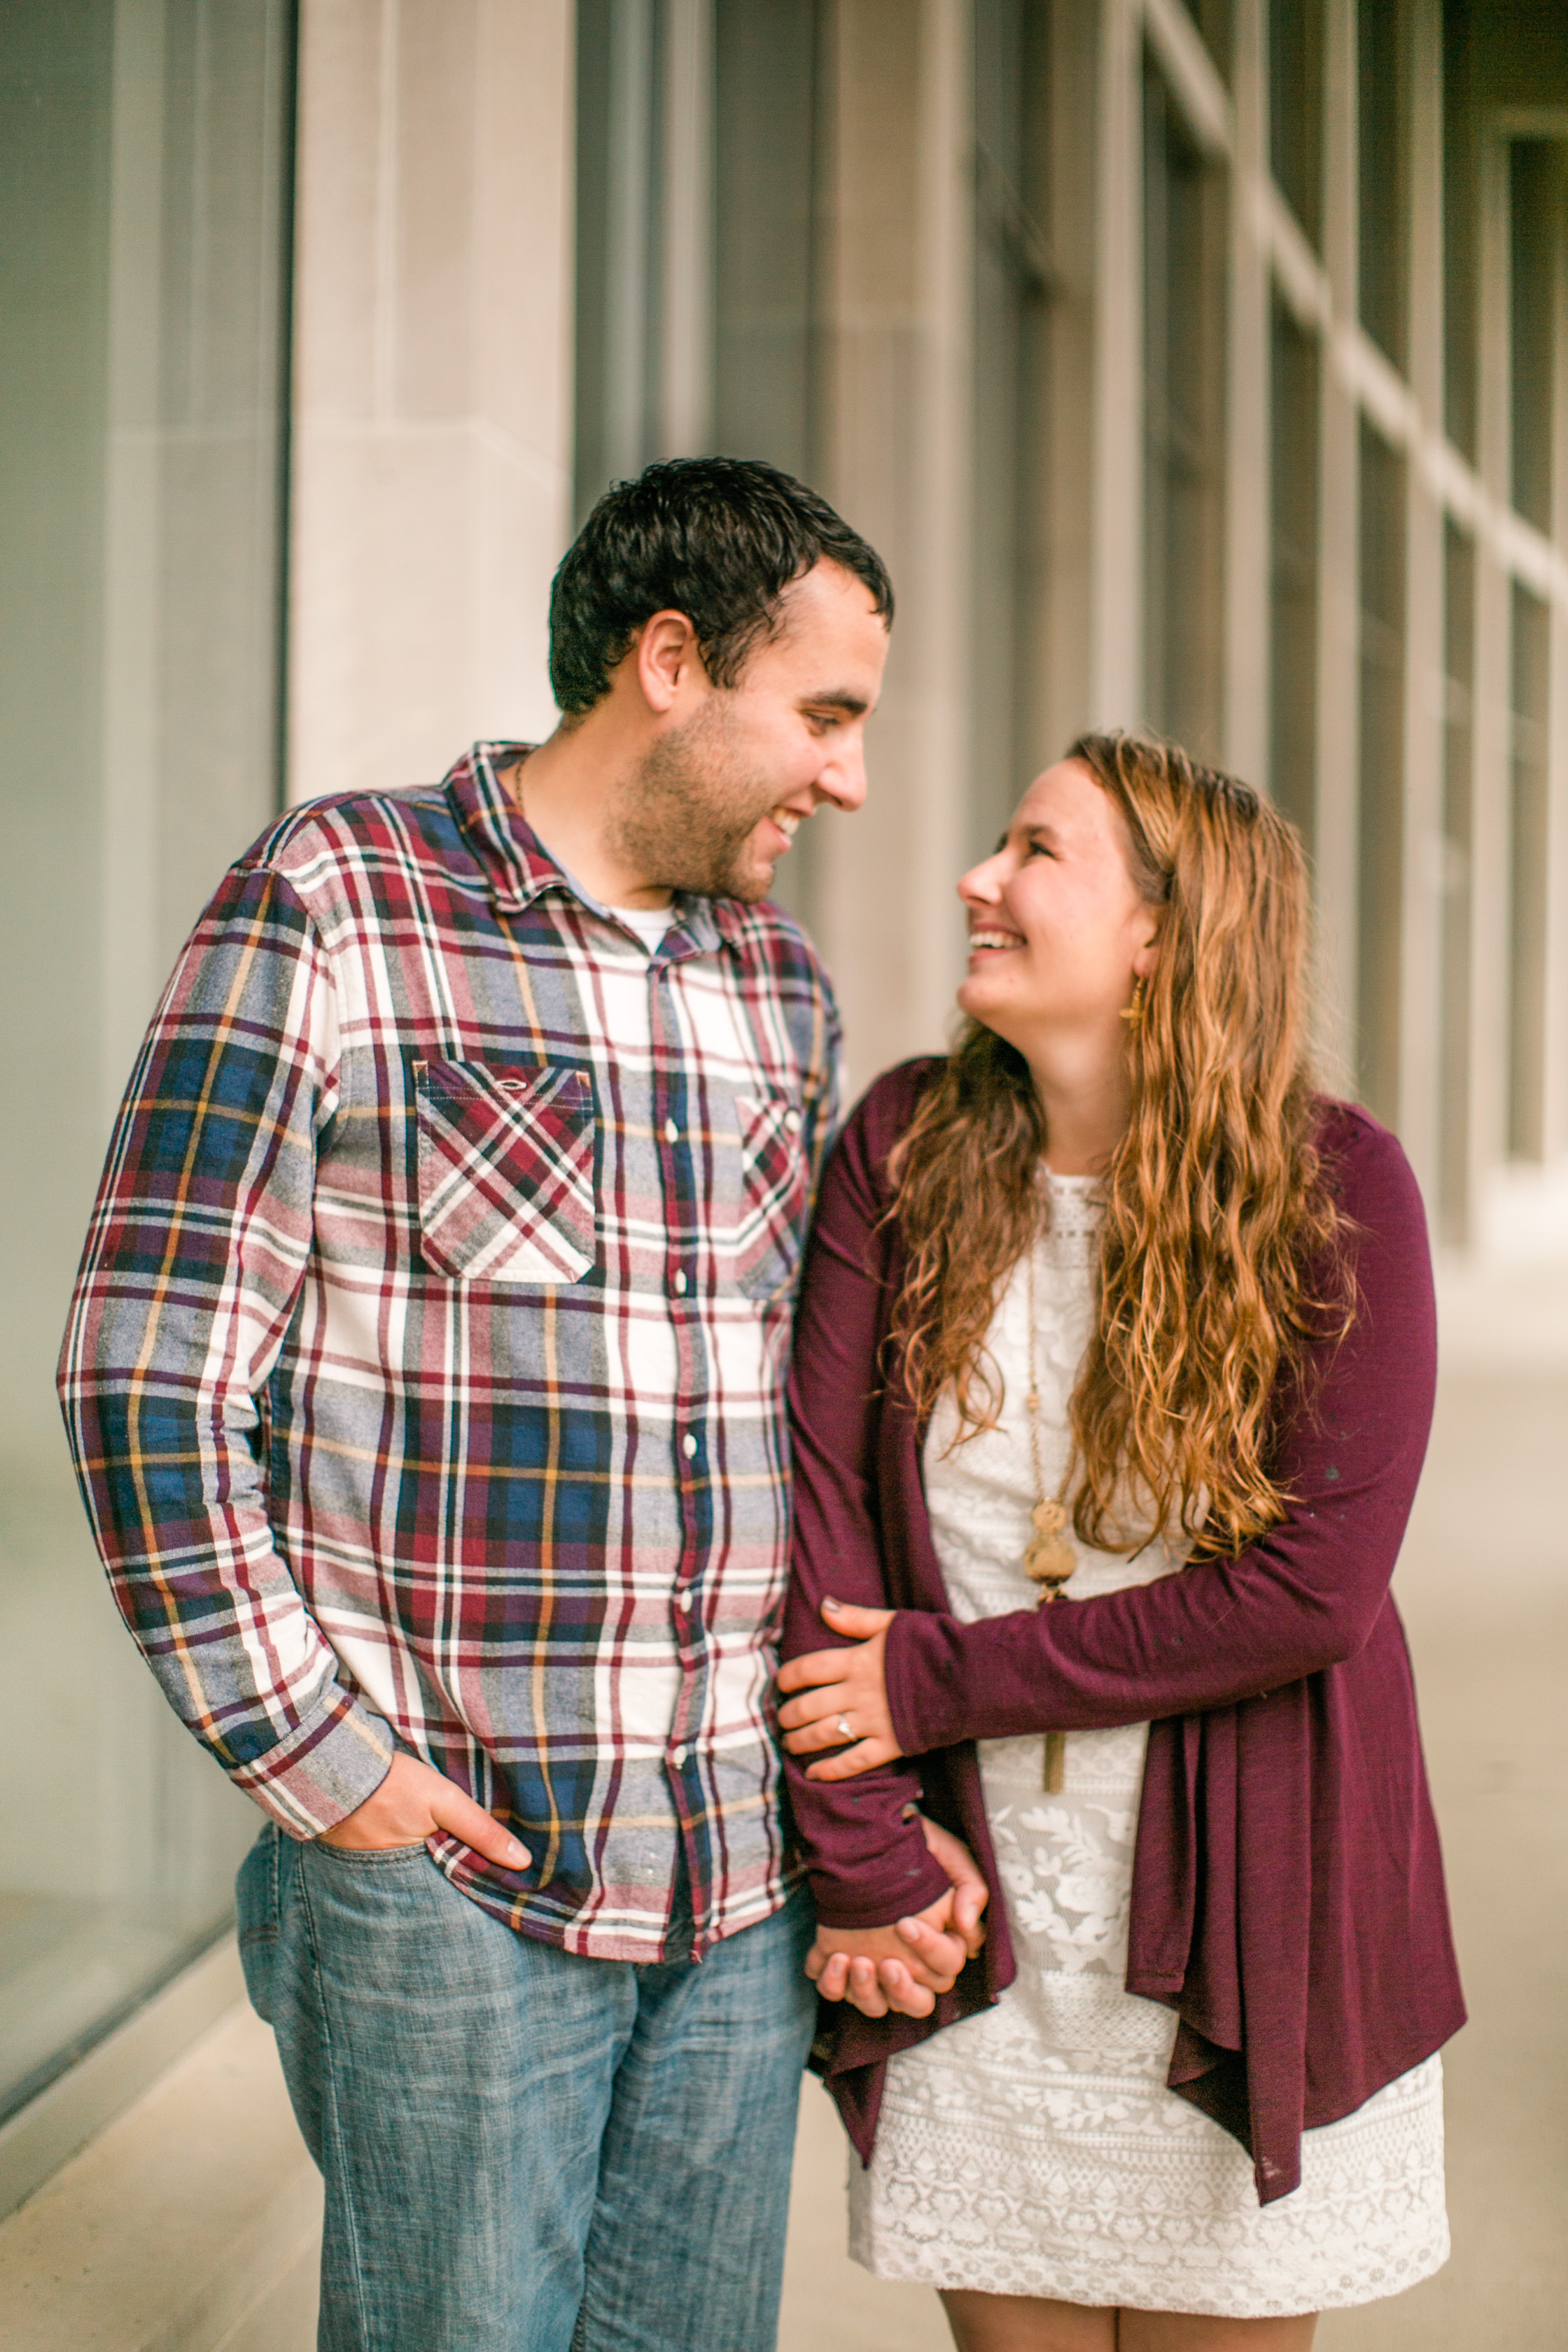 Lizzy-Nate-Engaged-des-moines-50.jpg